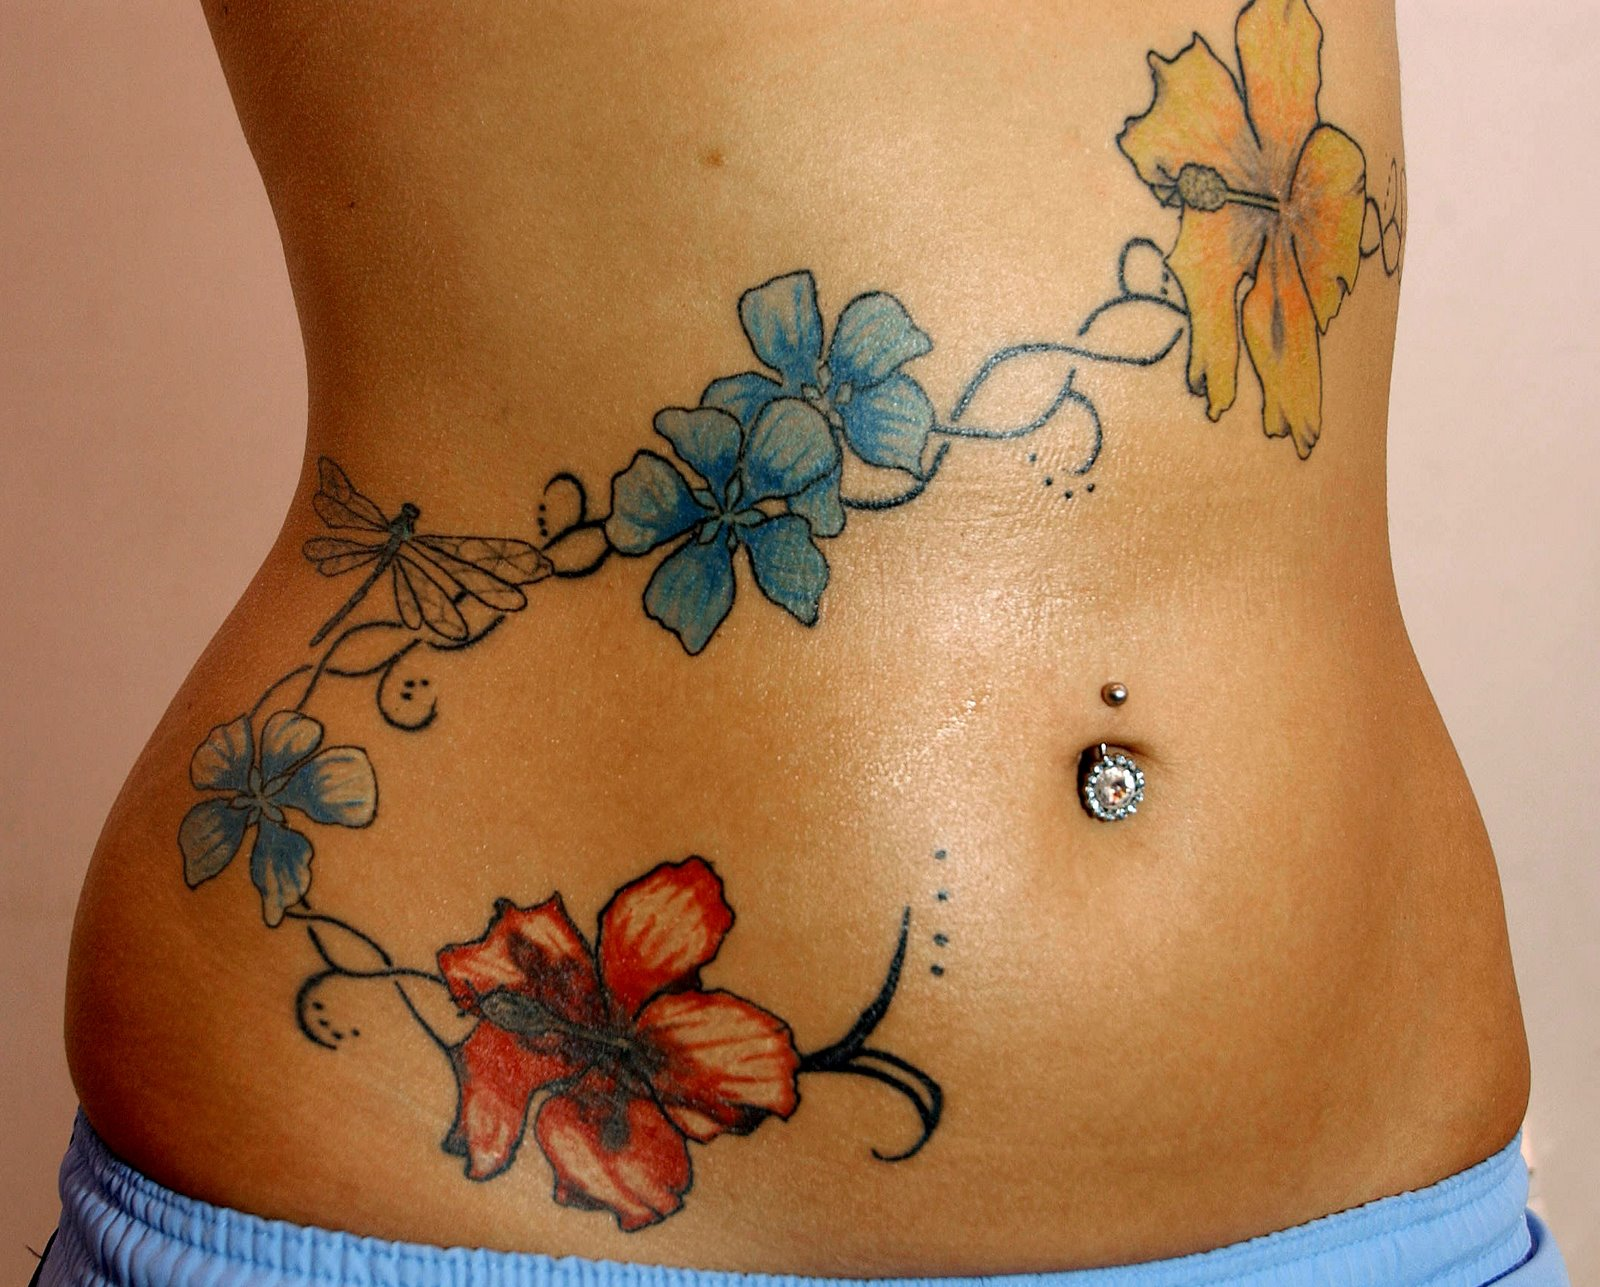 2017 01 small tattoo designs for women on foot - Tattoo Designs For Women In 2015